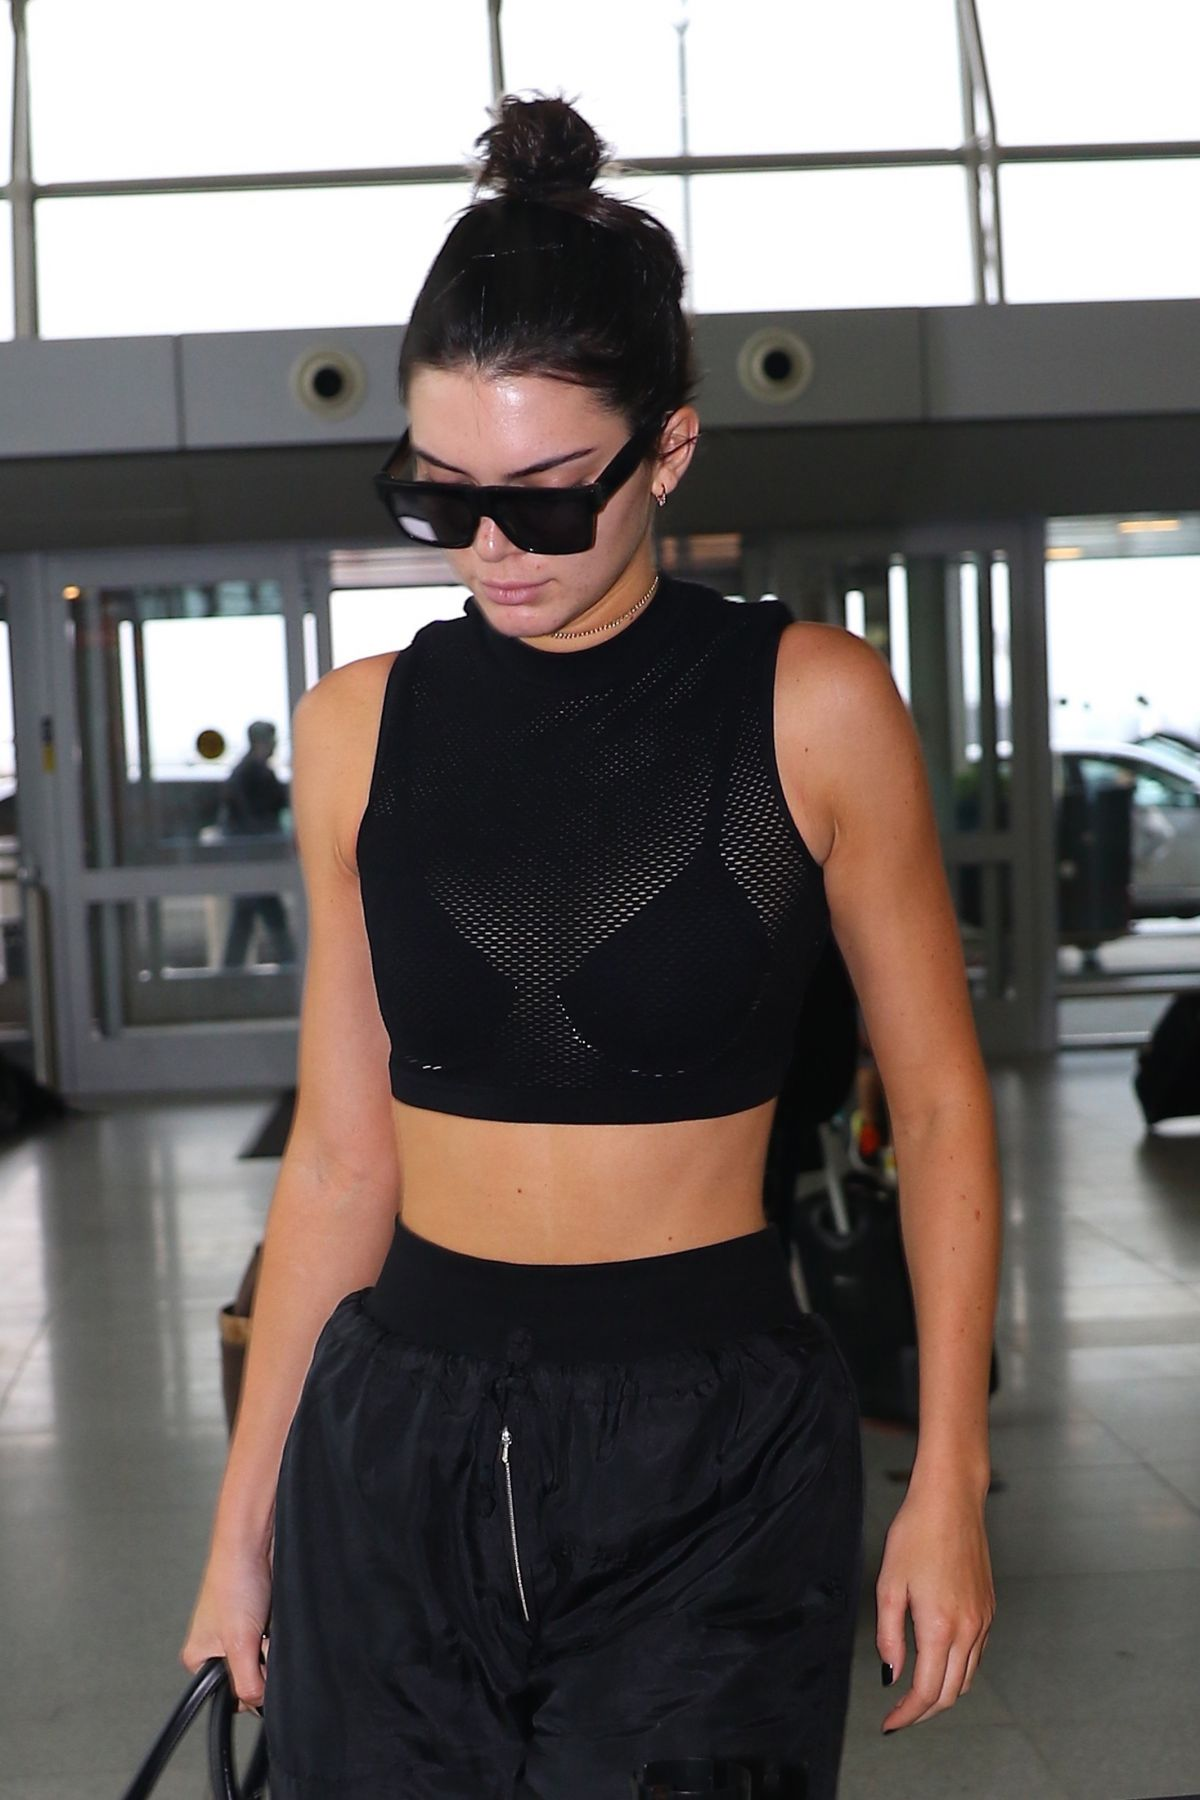 KENDALL JENNER at JFK Airport in New York 09/30/2016